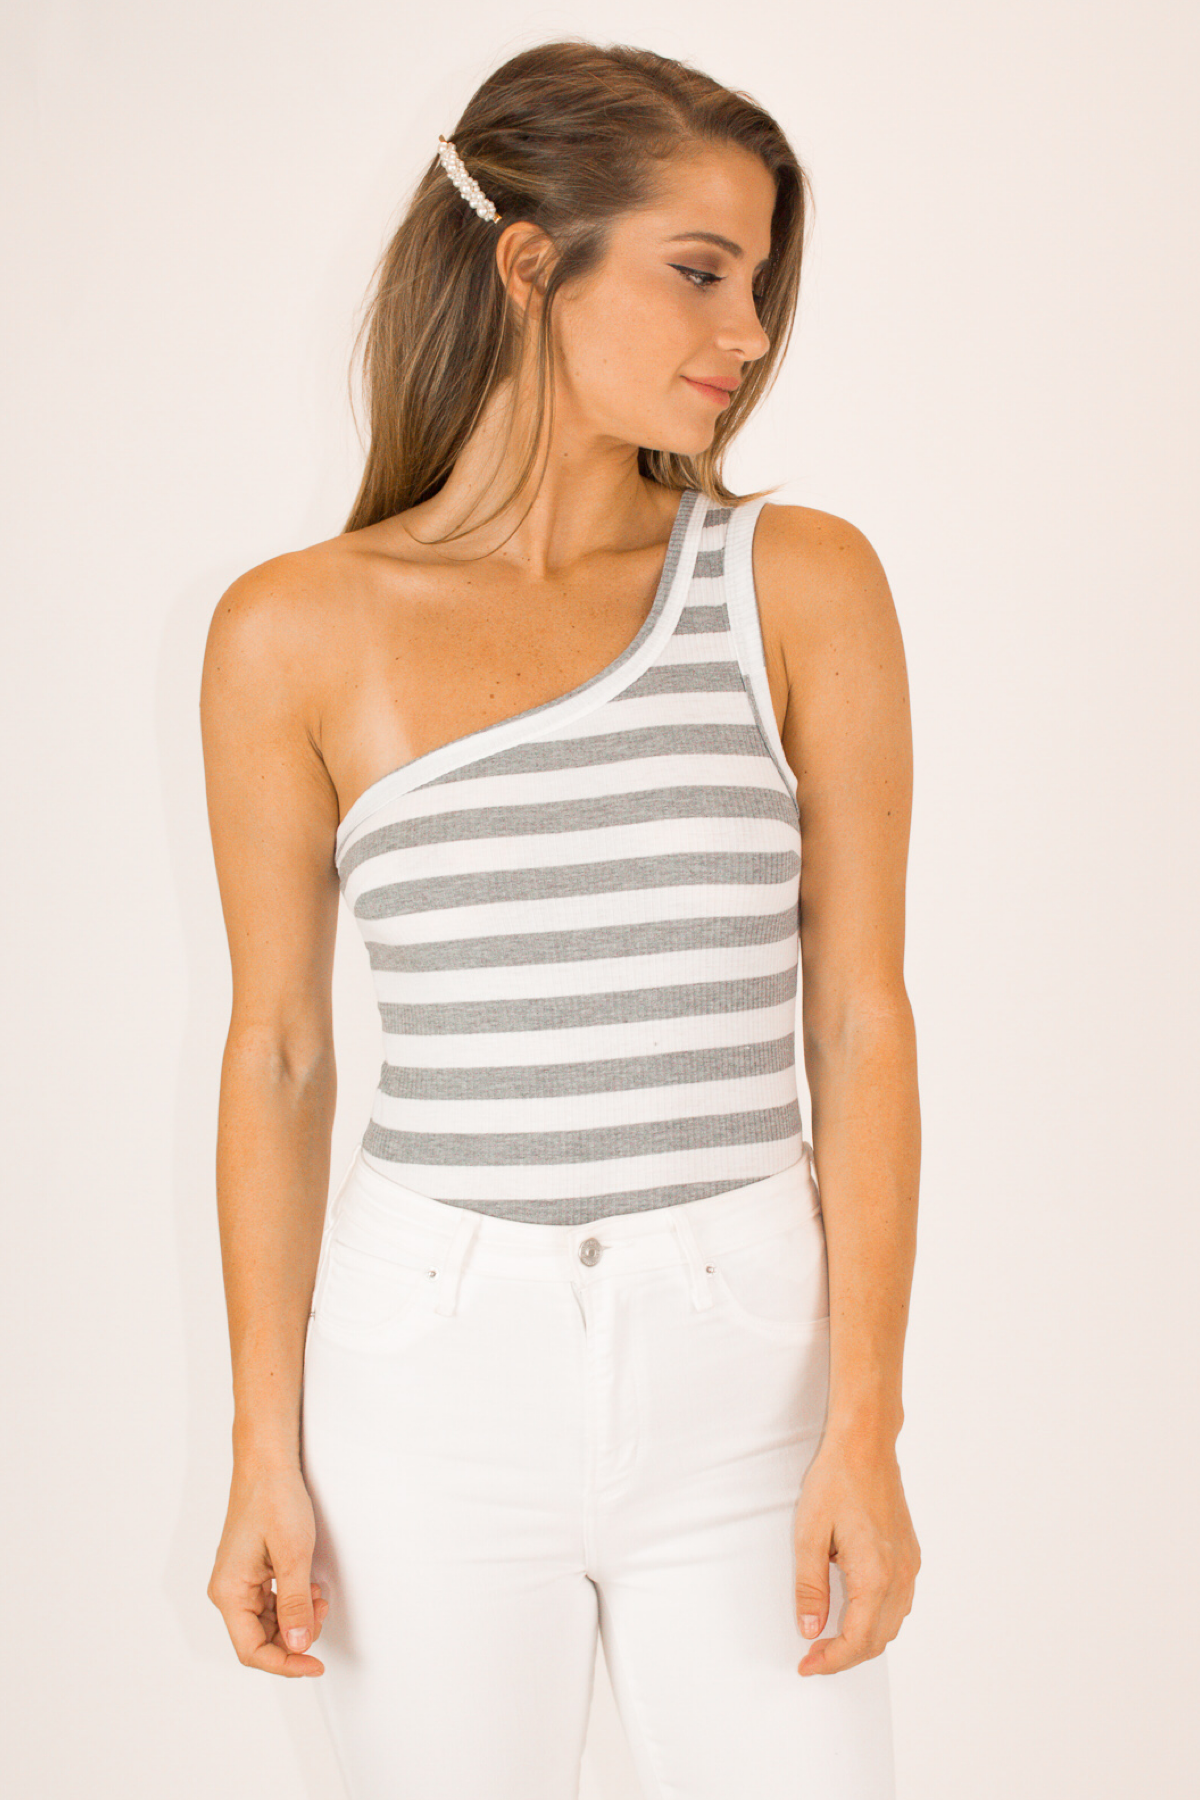 ONE SLEEVE GREY STRIPE CROP TOP / FINAL CLEARANCE